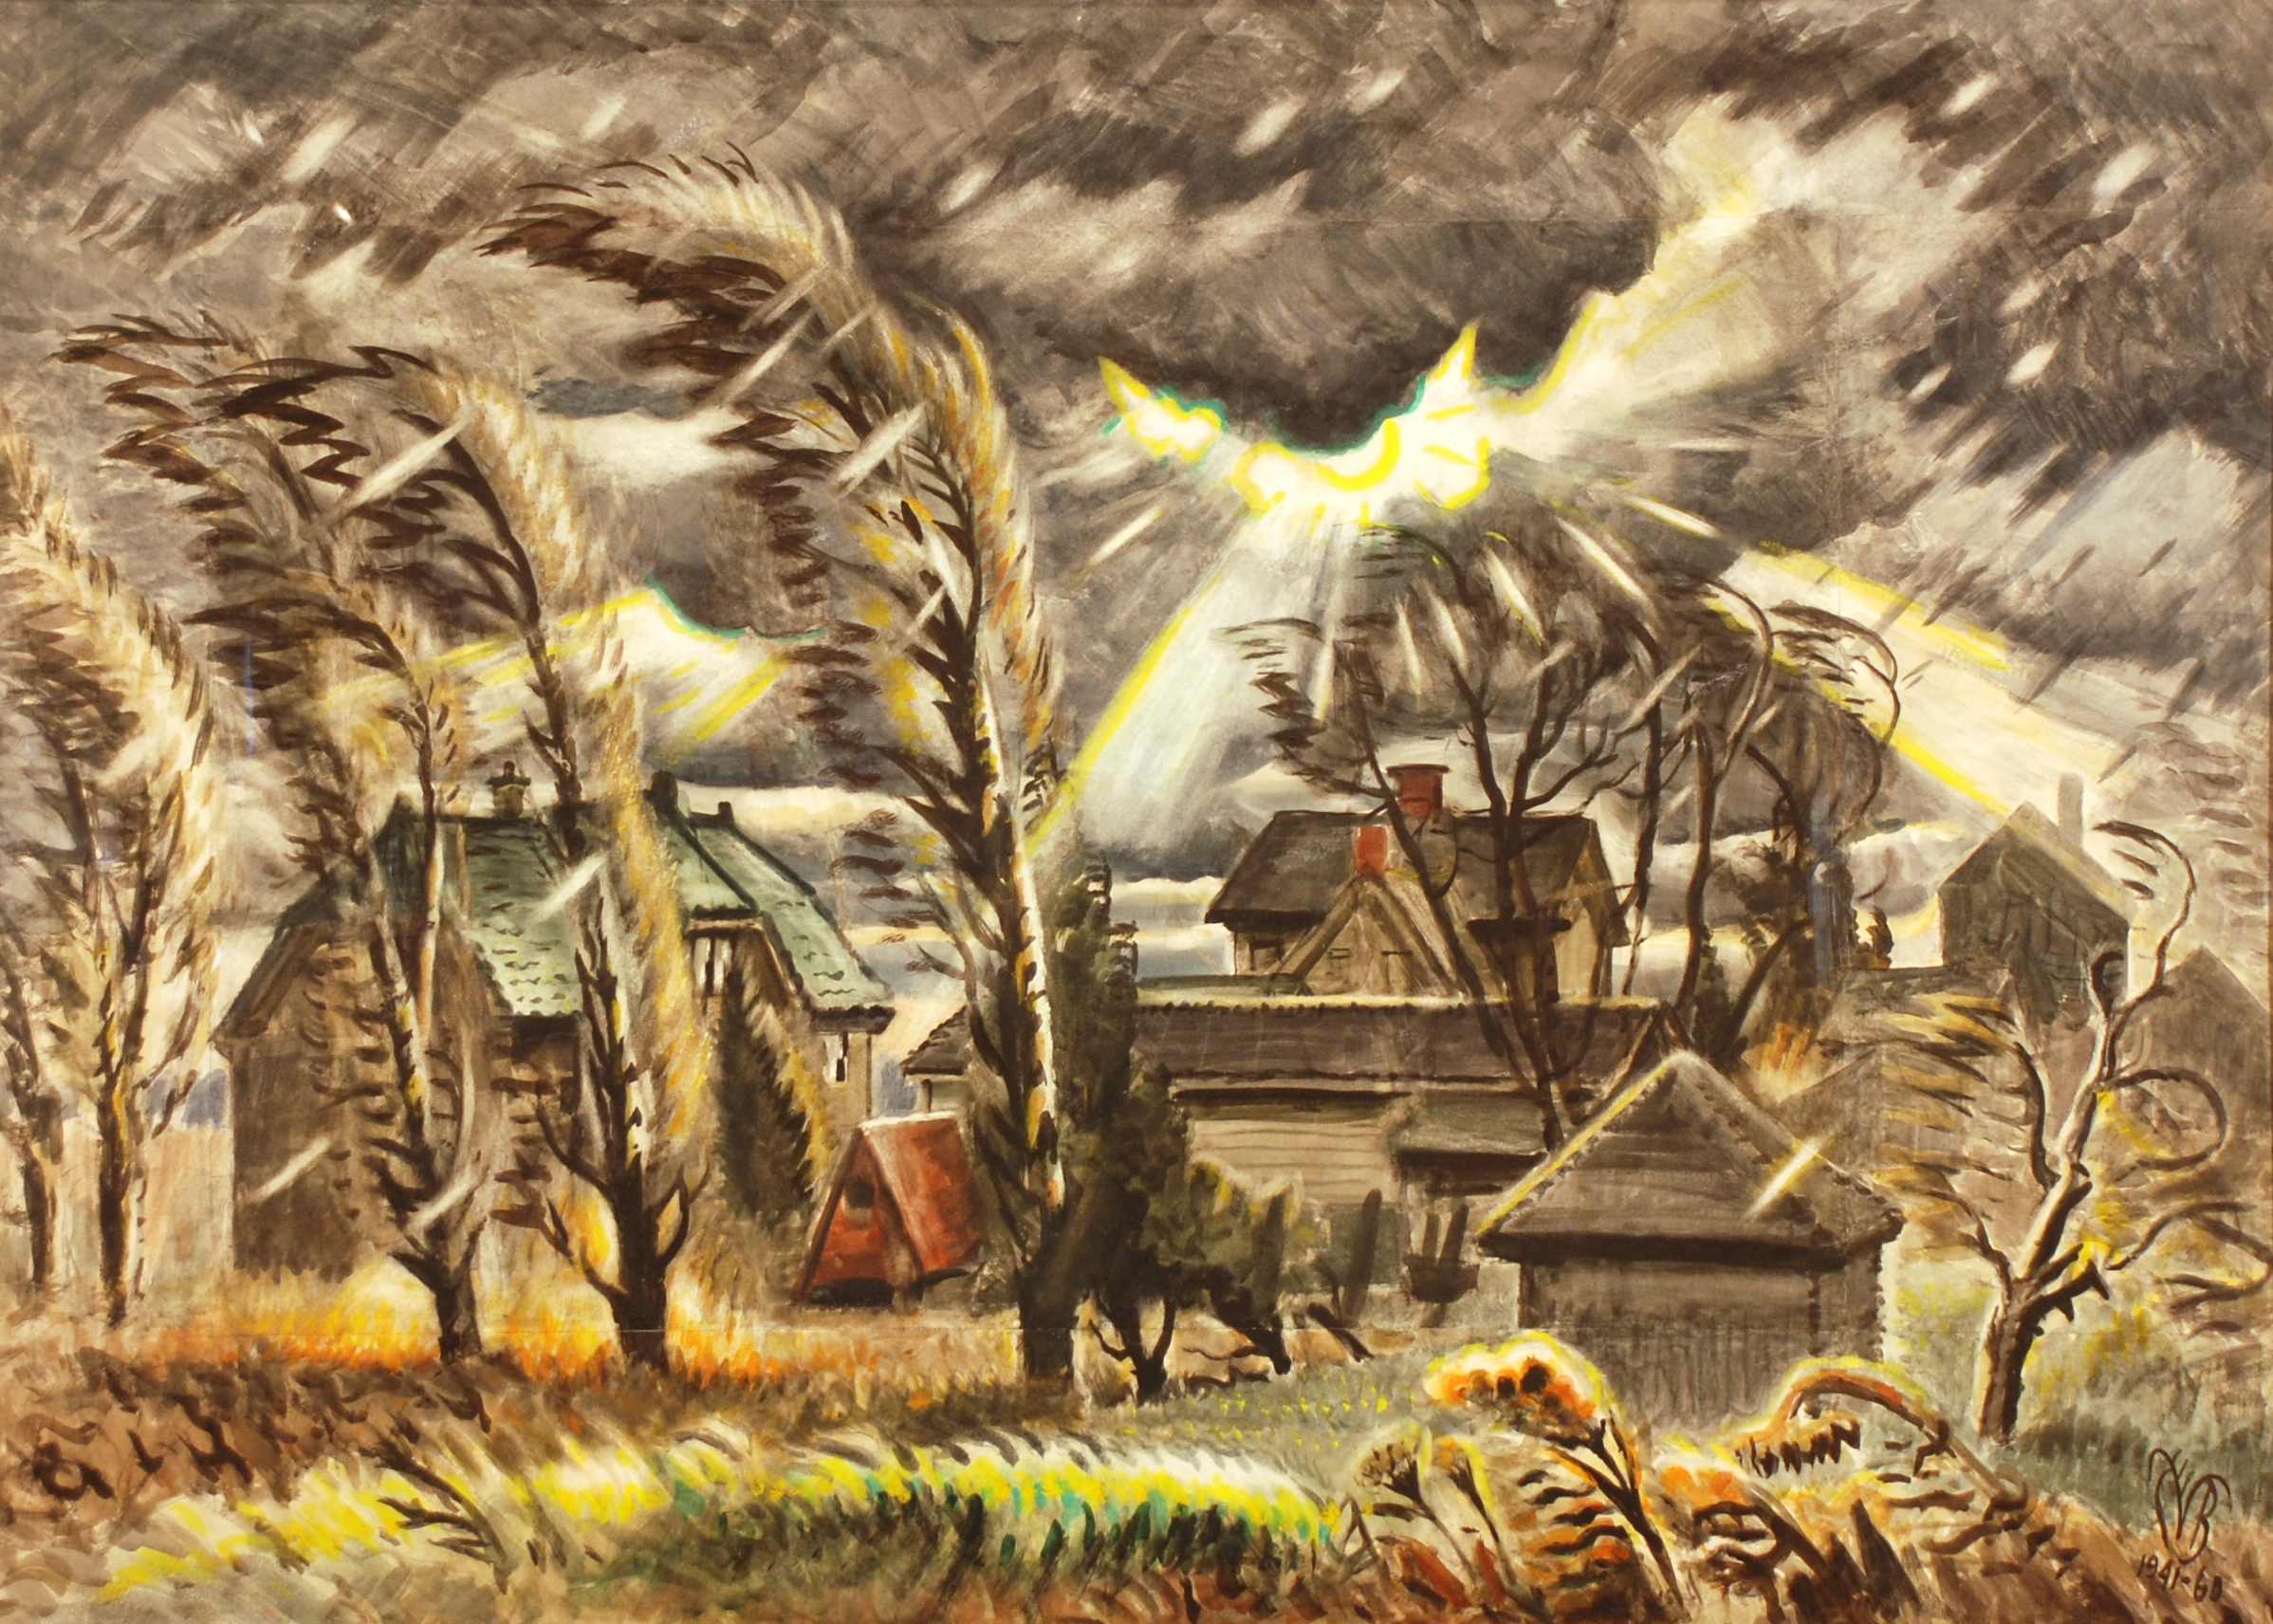 """December Storm,"" a 1941-1960 painting by Charles E. Burchfield, was the centerpiece of the Burchfield Penney Art Center's first exhibition in 1966. It is also on view during the center's recreation of that exhibition to mark its 50th anniversary."